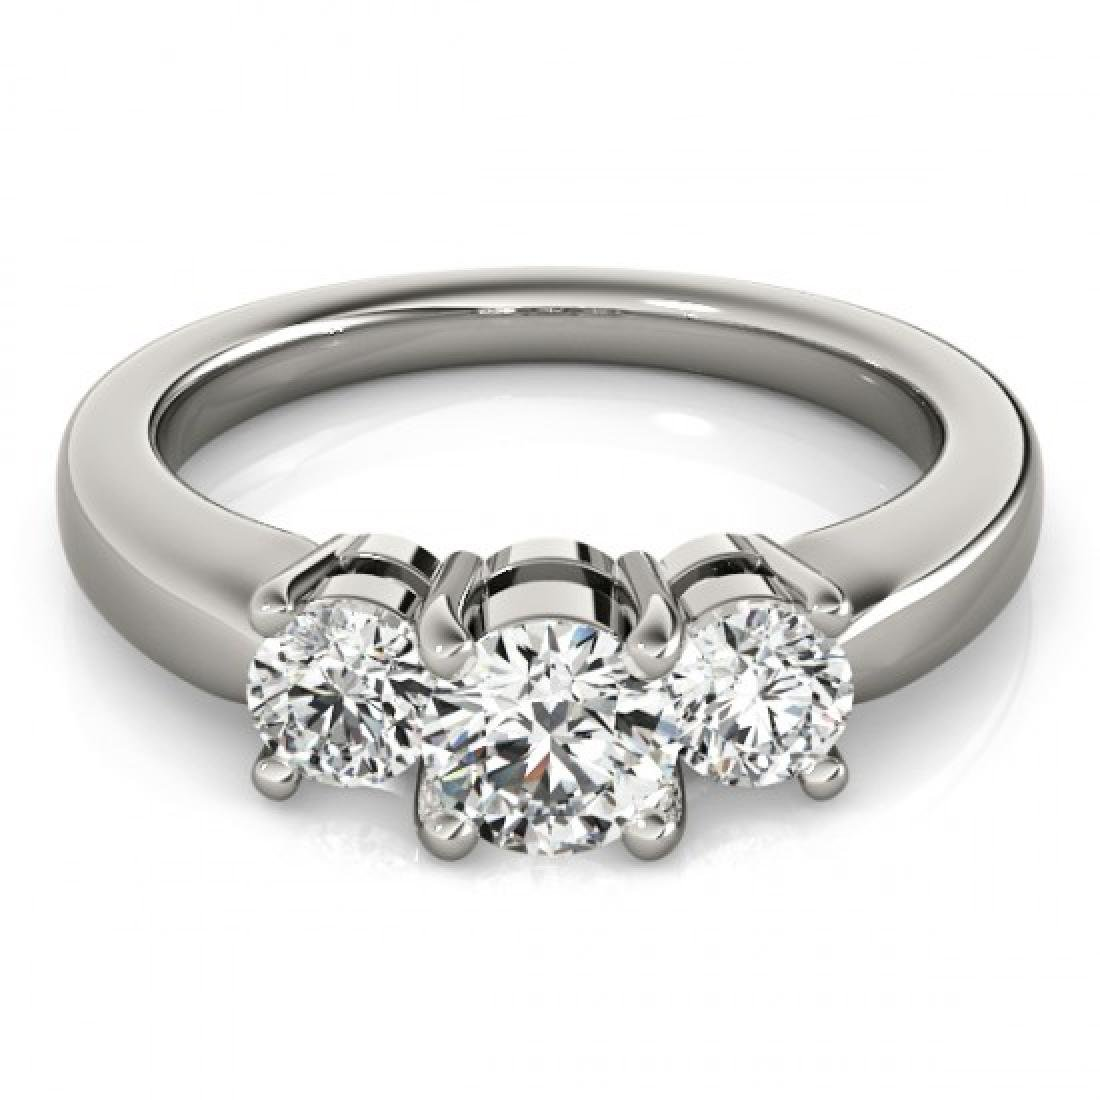 1.33 CTW Certified VS/SI Diamond 3 Stone Ring 14K White